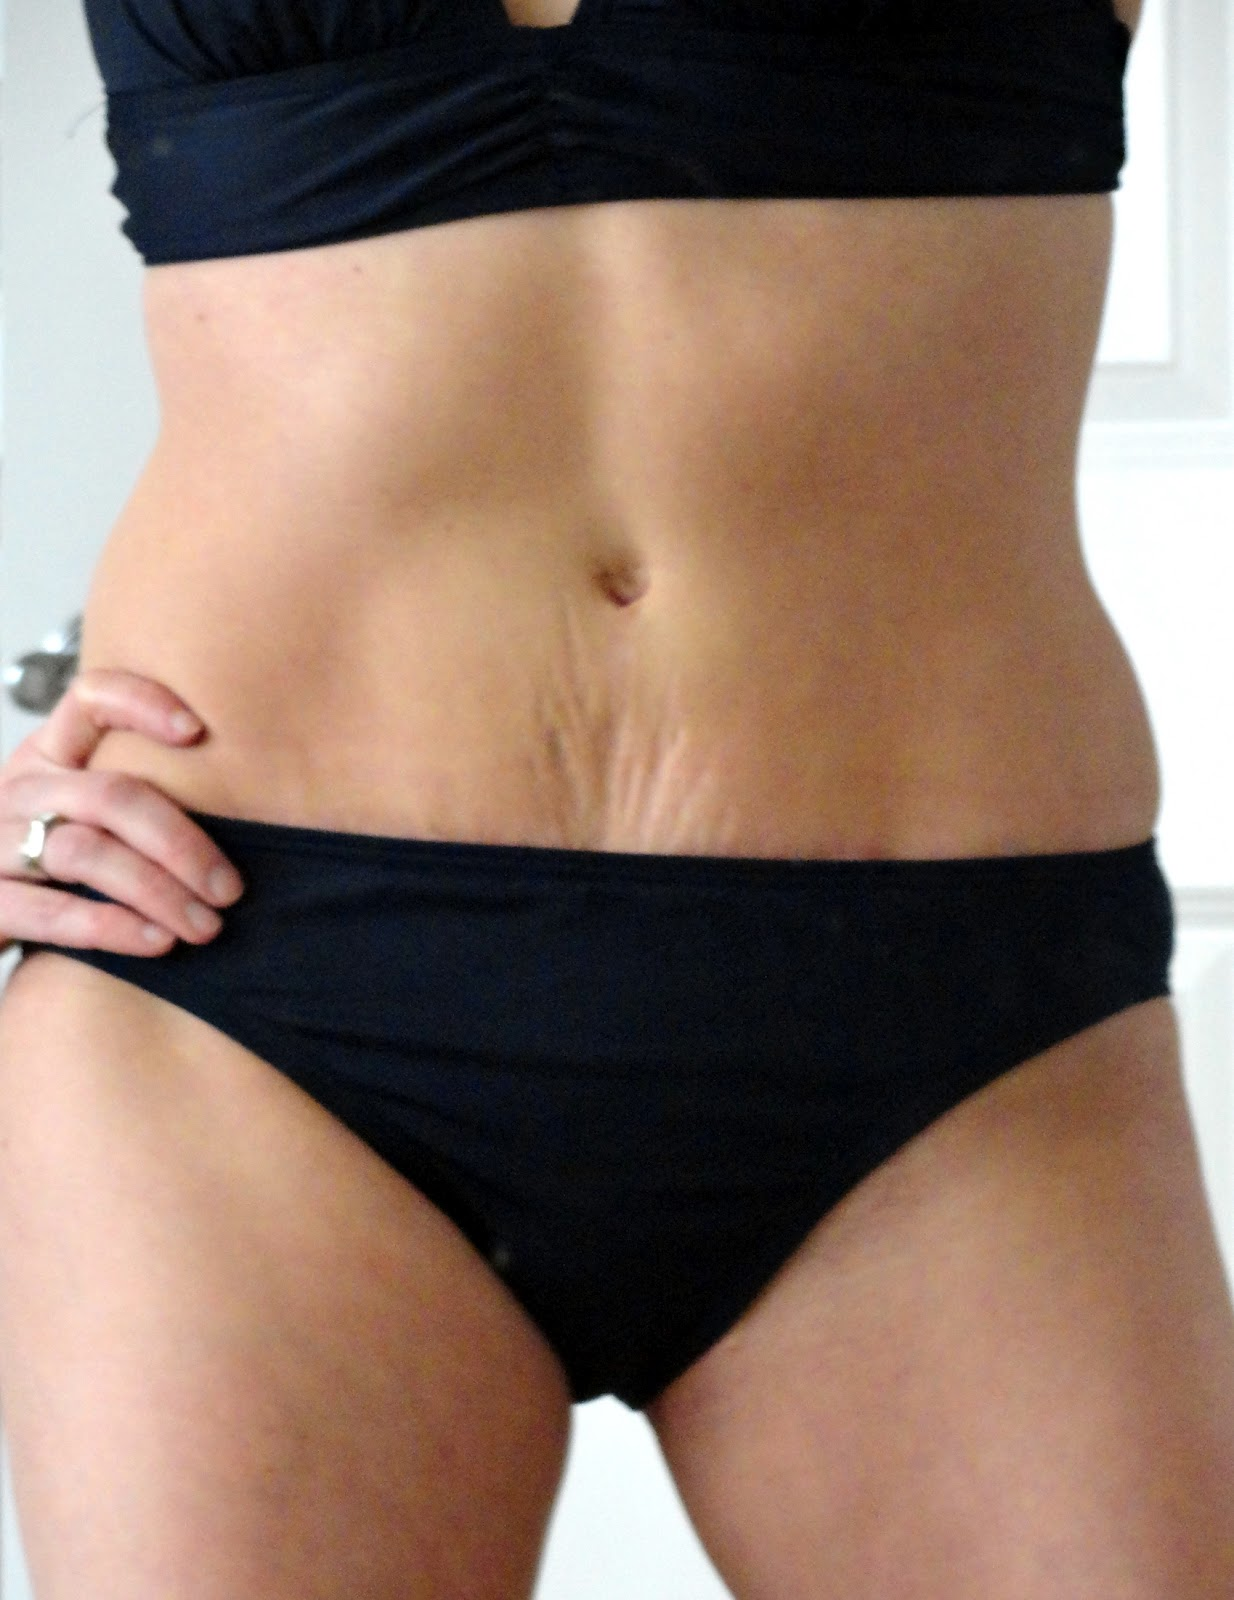 The Truth Behind A Tummy Tuck Why This Mom Got Plastic Surgery